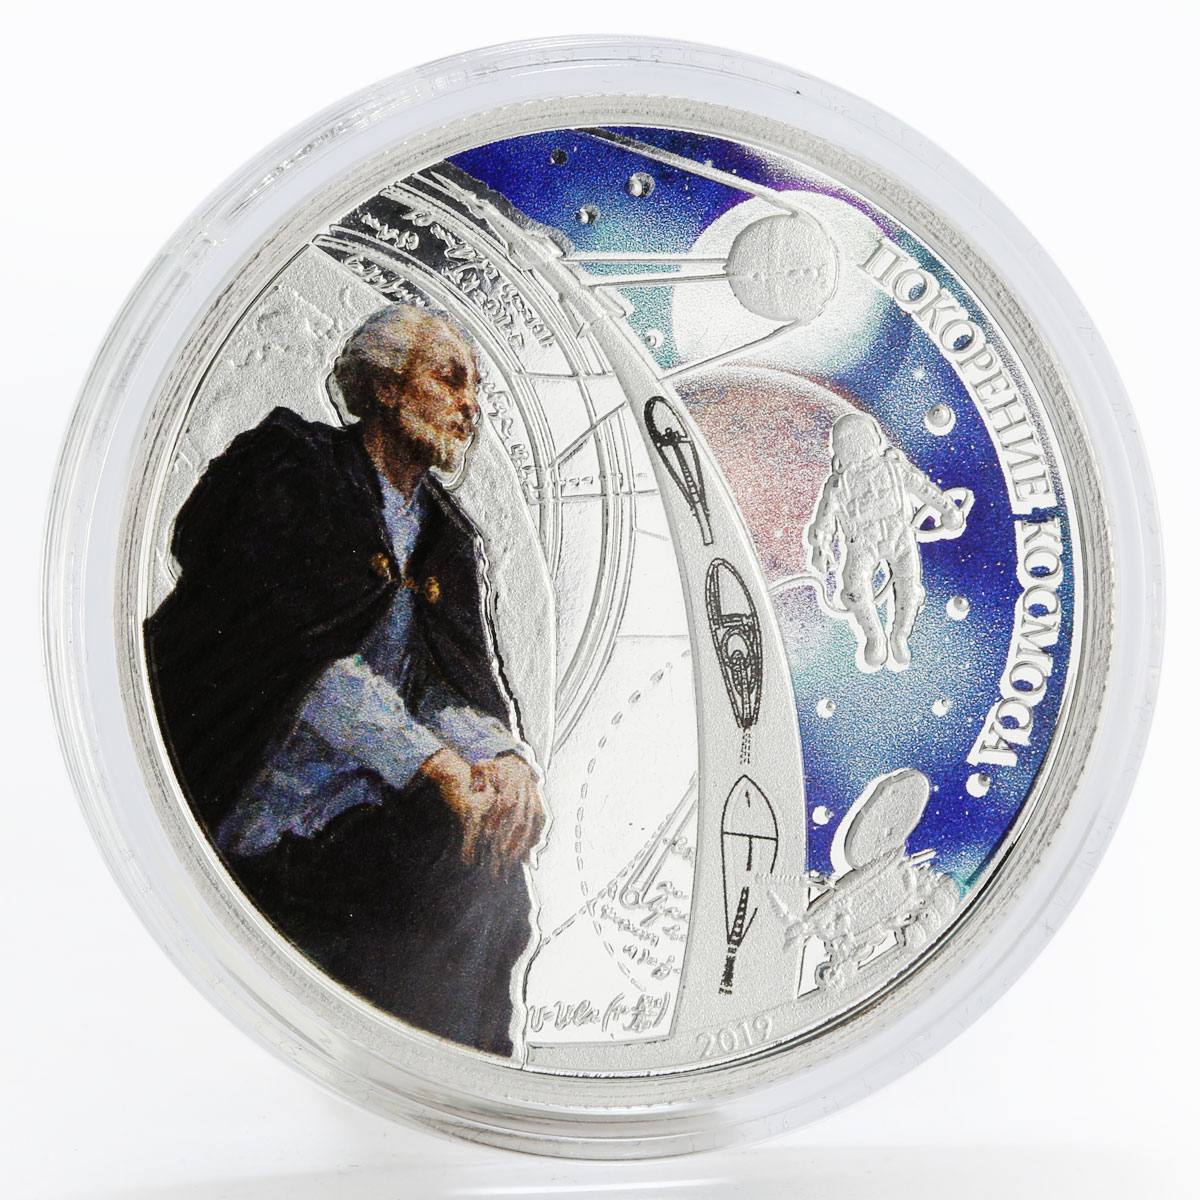 Benin 1000 francs Conquest of Space colored proof silver coin 2019